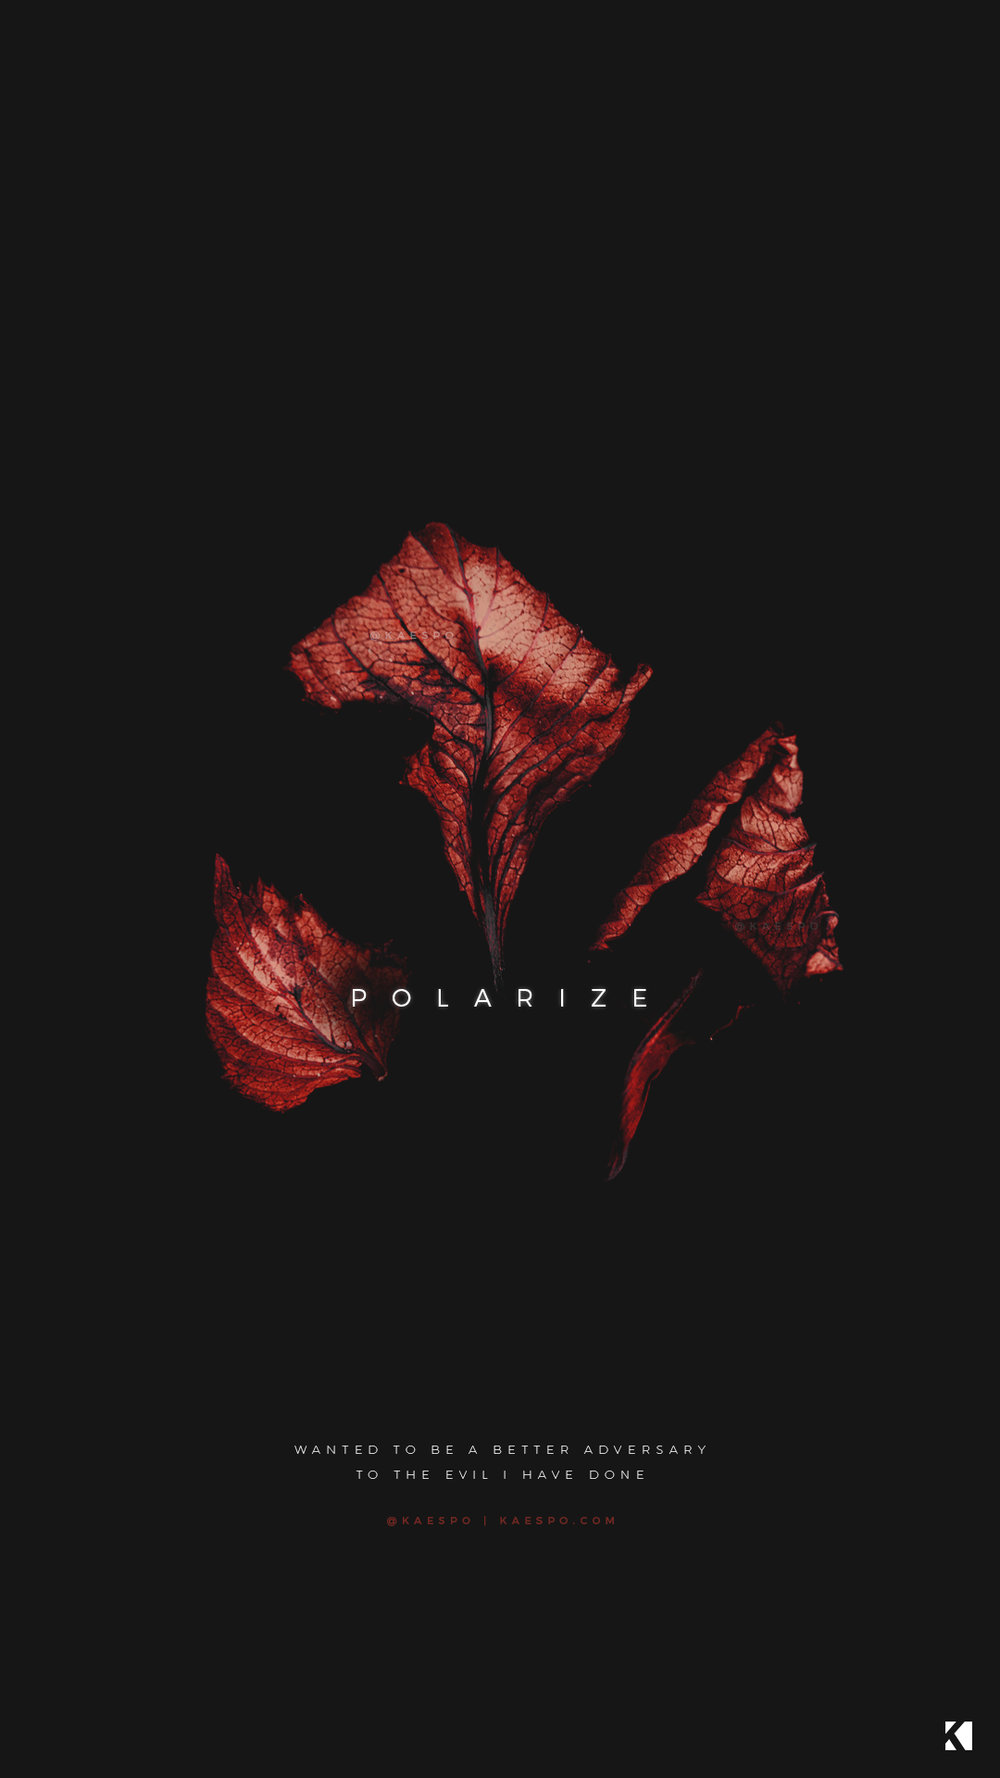 Blurryface Lyrics | Photography + Wallpaper Design by KAESPO Creative